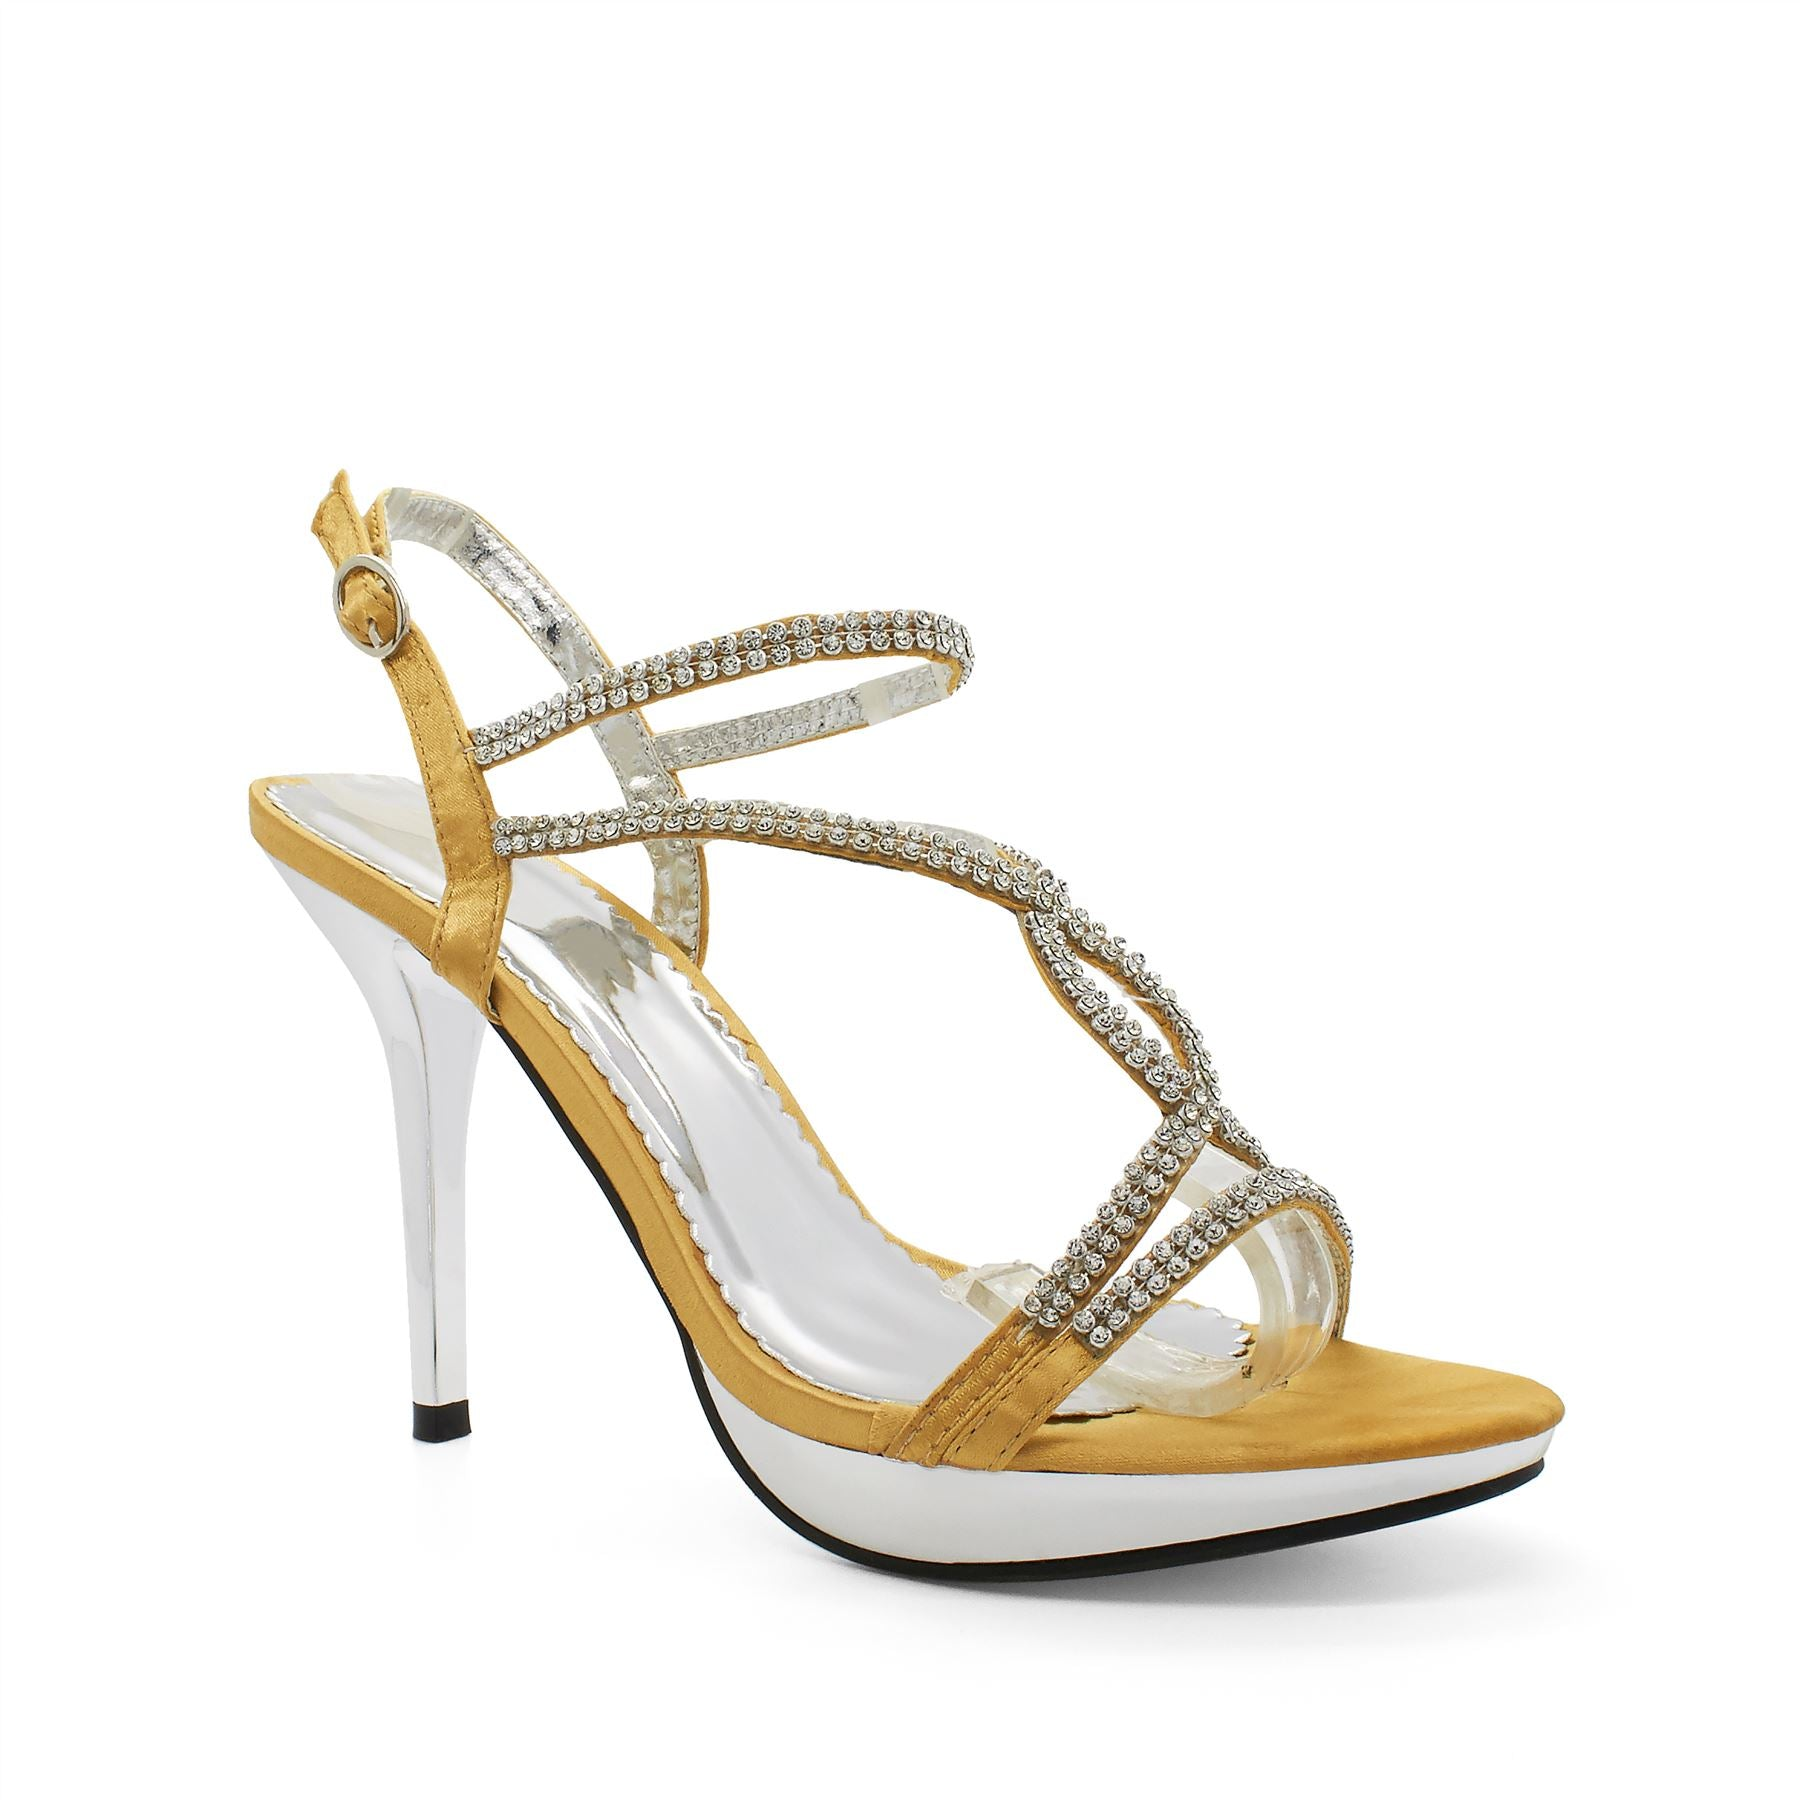 Gold Satin Embellished Heeled Sandals